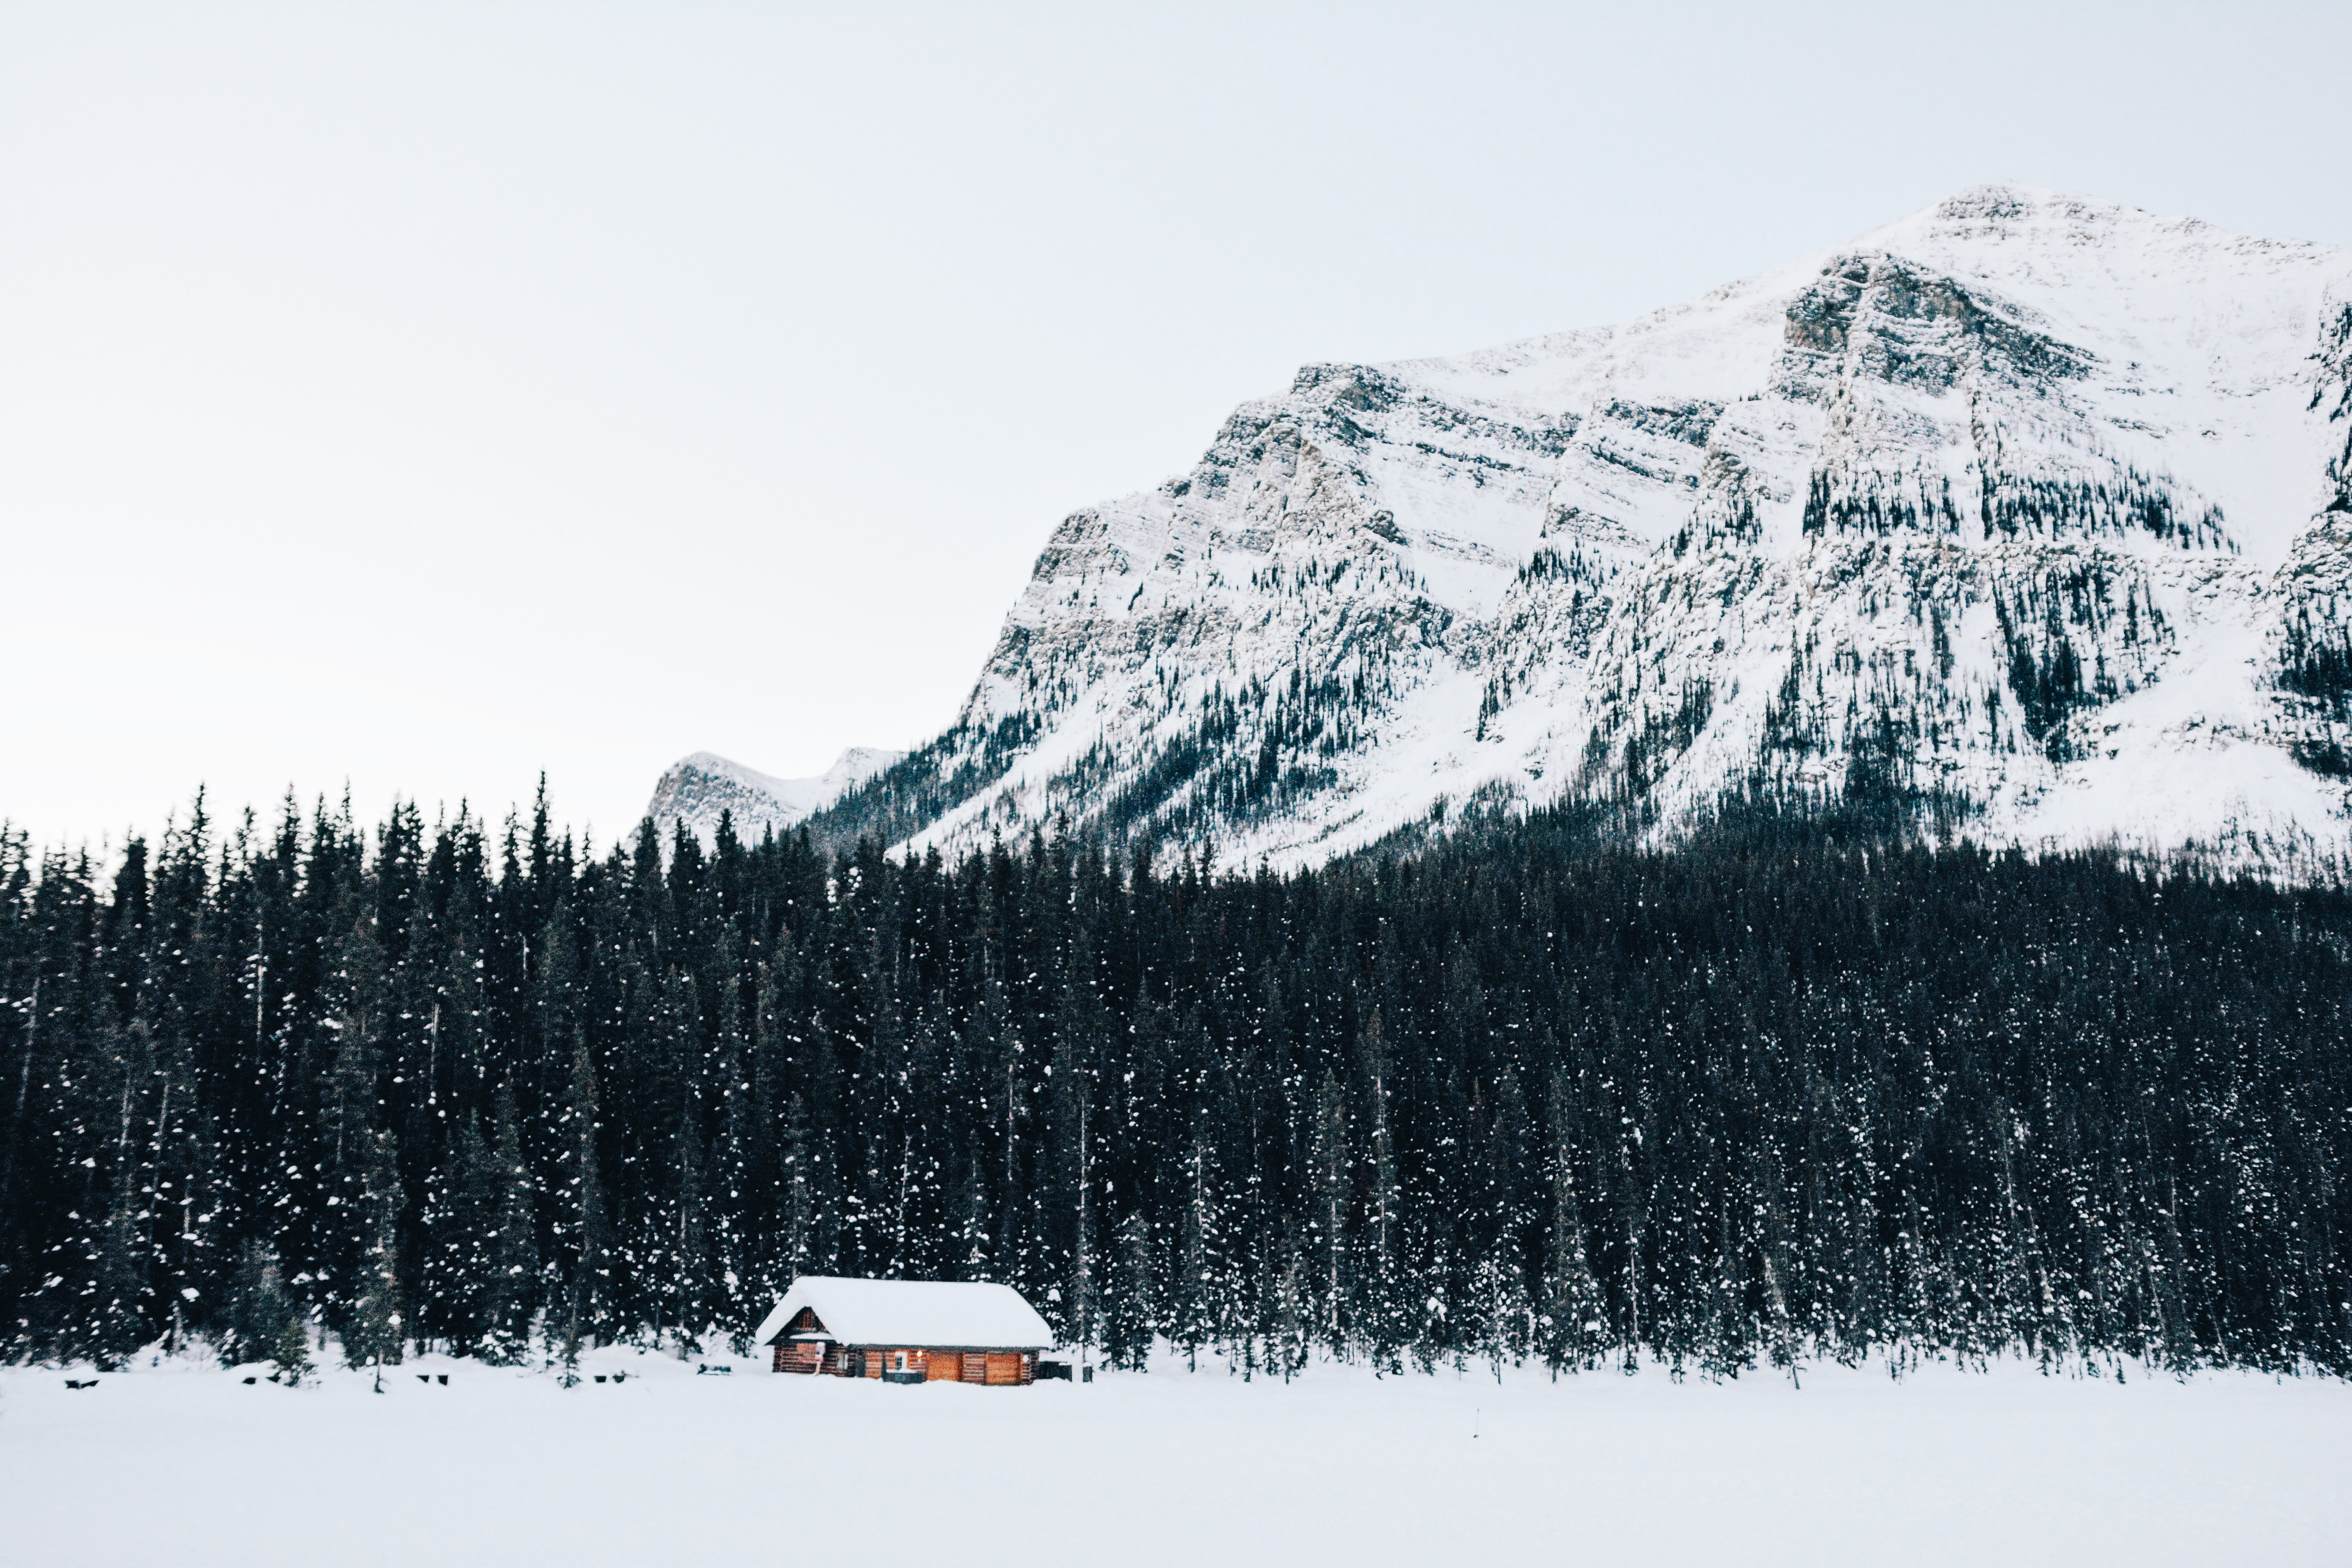 Cabin alone in the woods surrounded by a snowy winter landscape